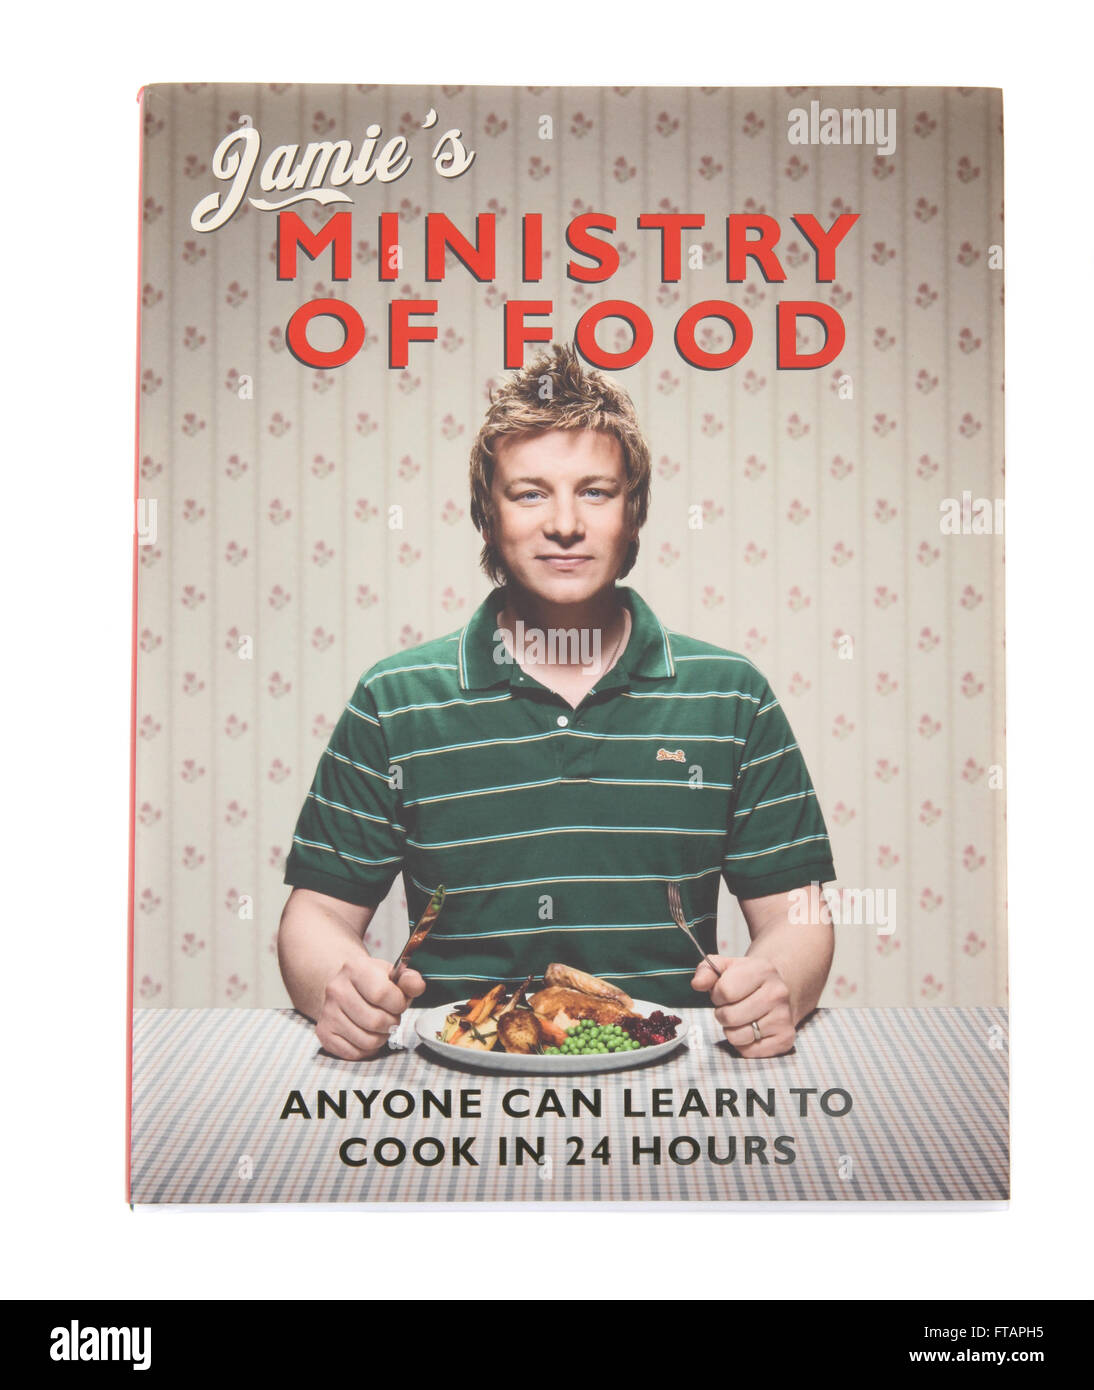 A cookery book by Jamie Oliver called Jamie's Ministry of Food - Stock Image